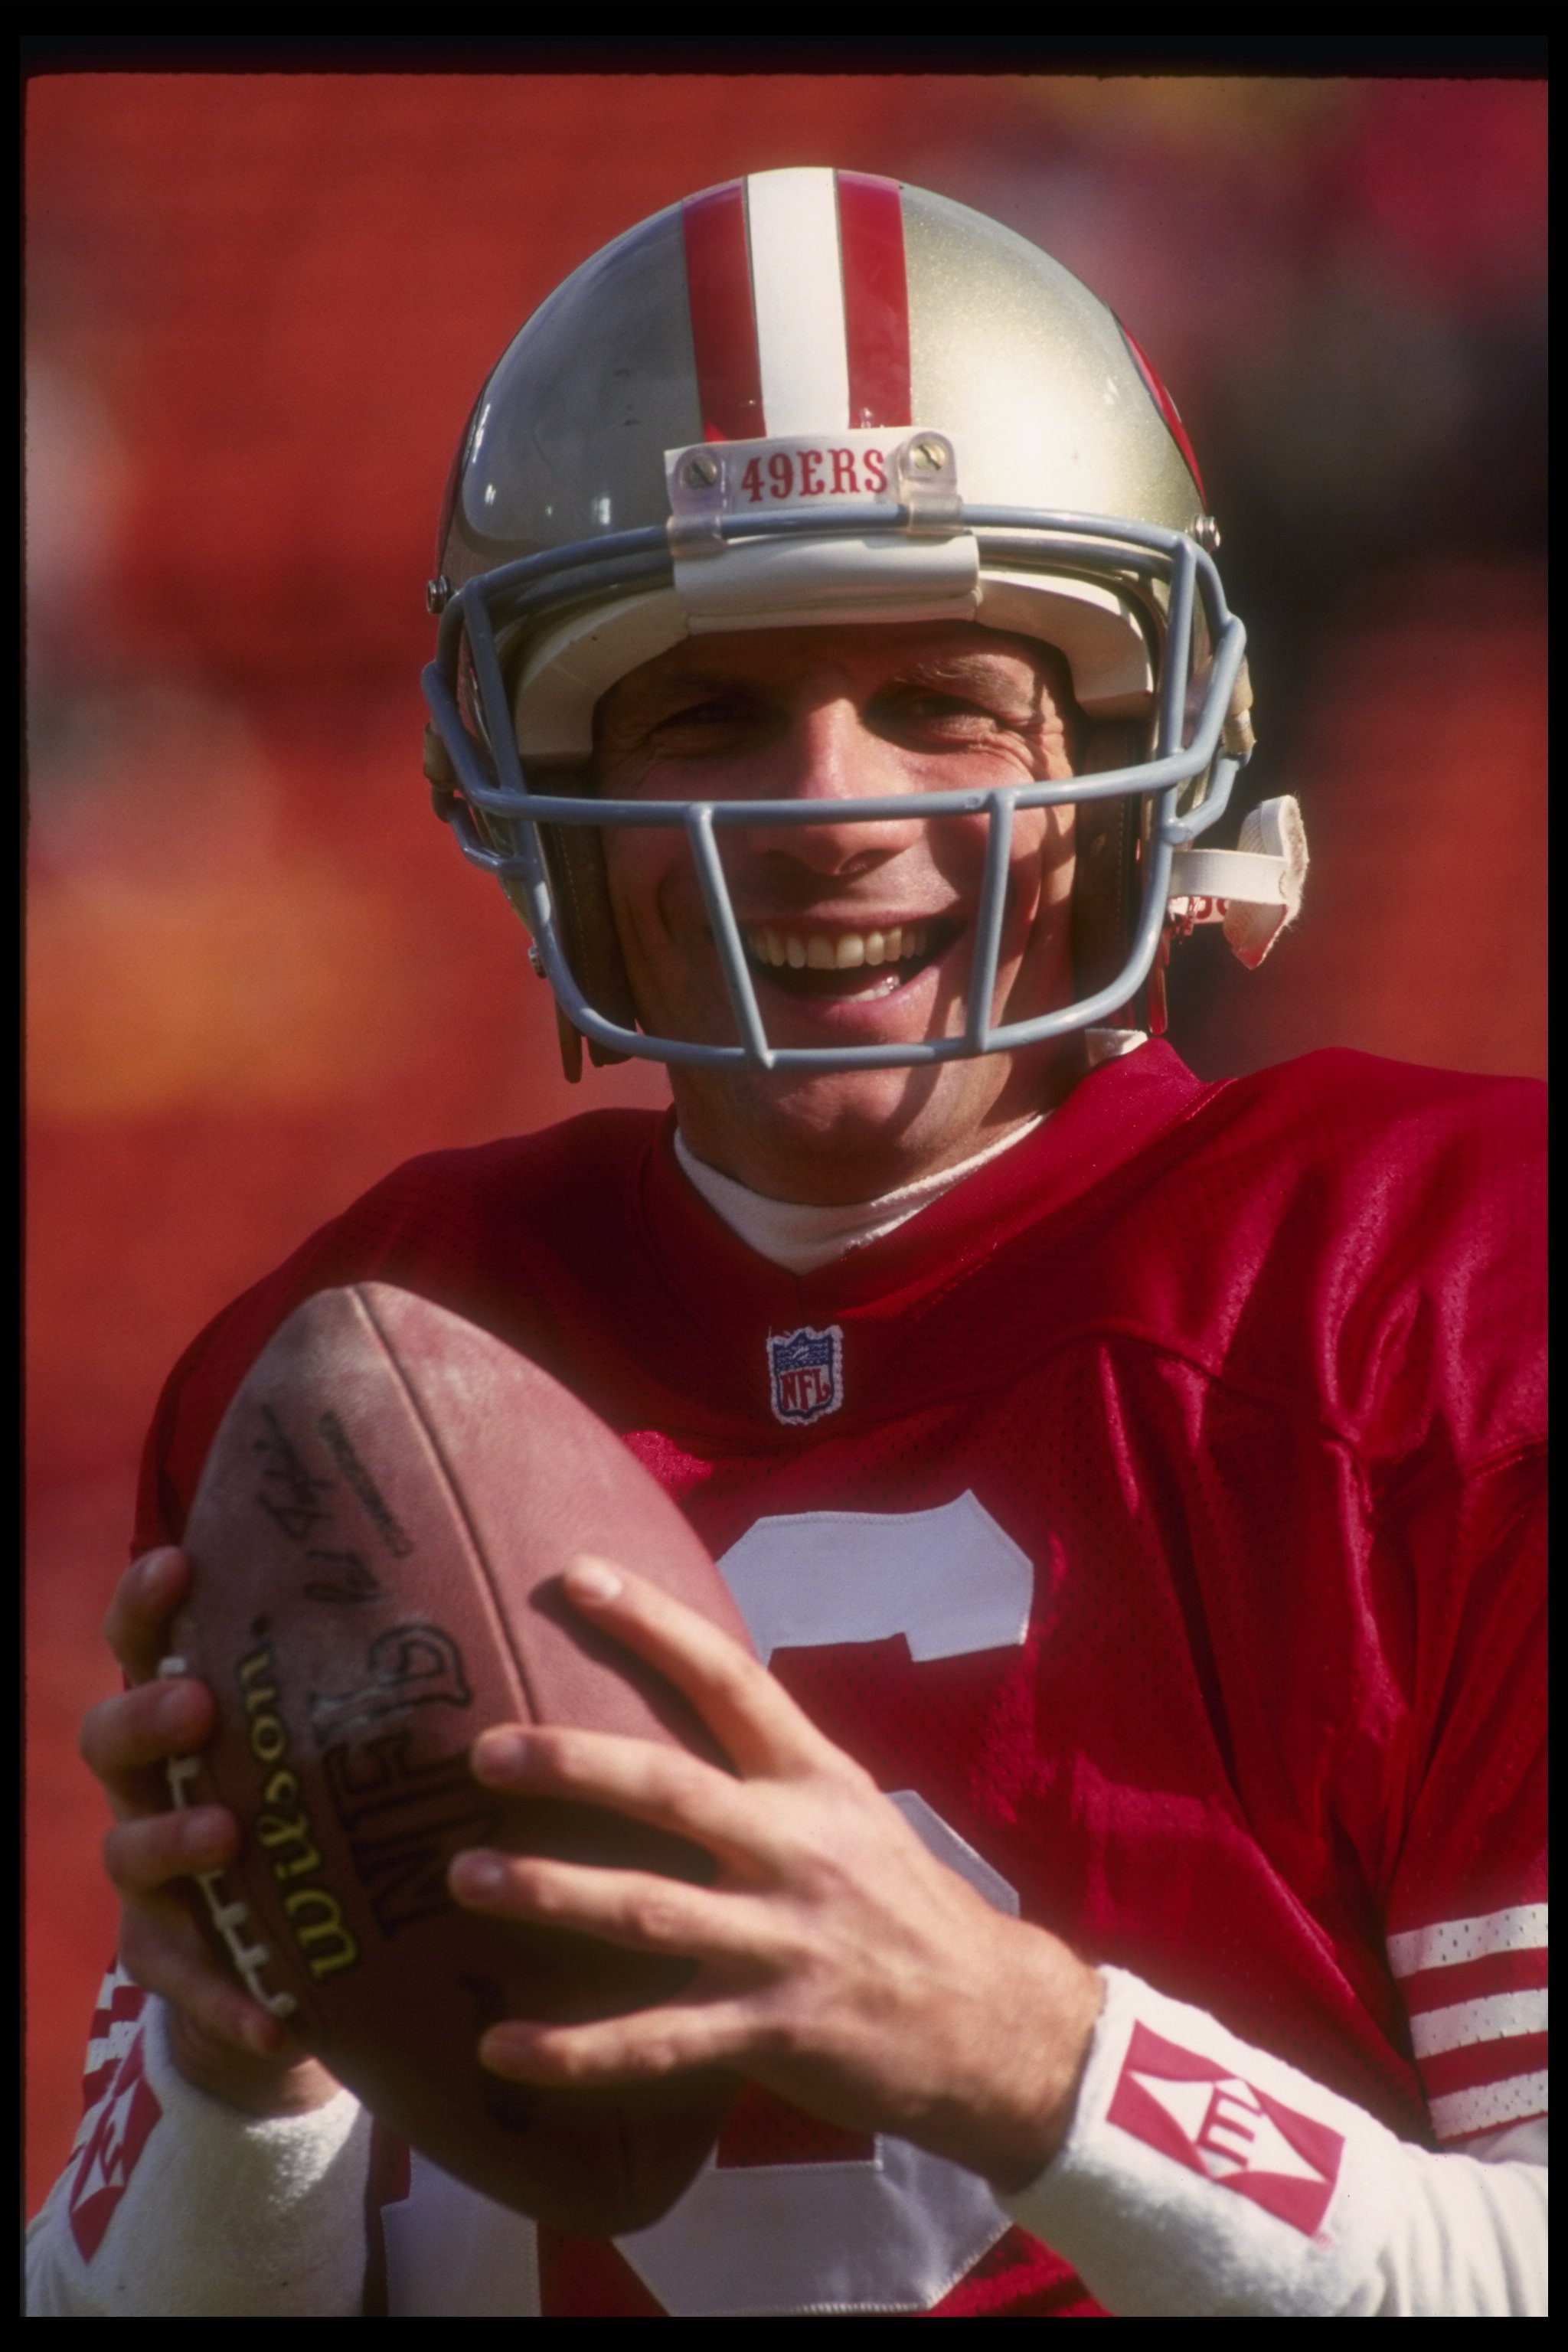 9 Jan 1993: Quarterback Joe Montana of the San Francisco 49ers looks on during a playoff game against the Washington Redskins at Candlestick Park in San Francisco, California. The 49ers won the game, 20-13.